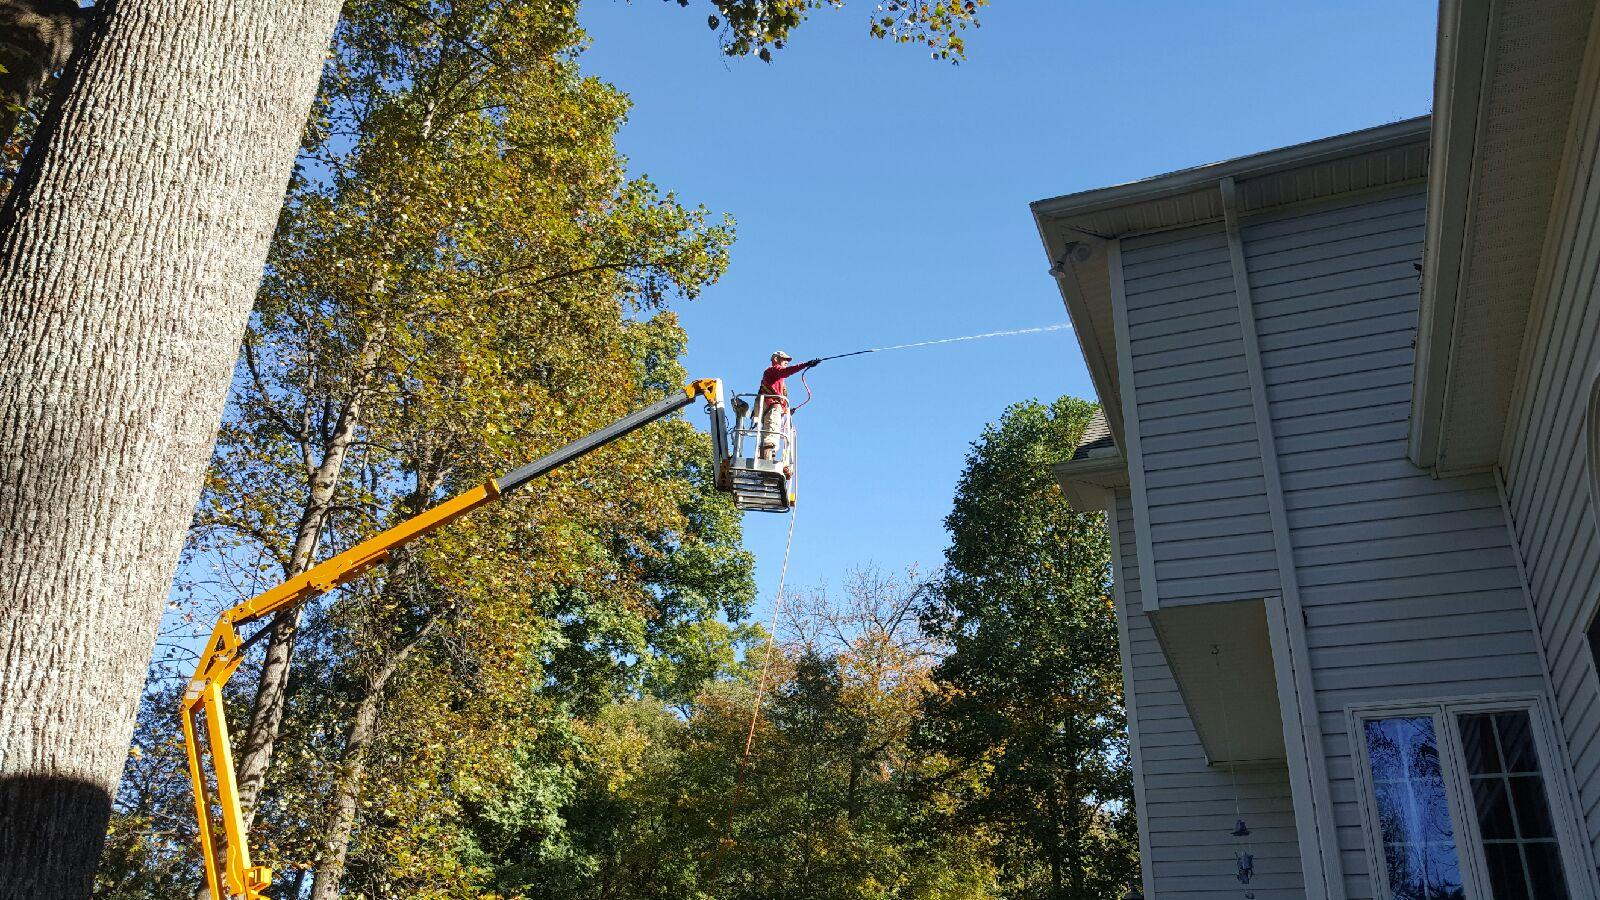 Boom Lift | Power Washing Service in Fayetteville PA